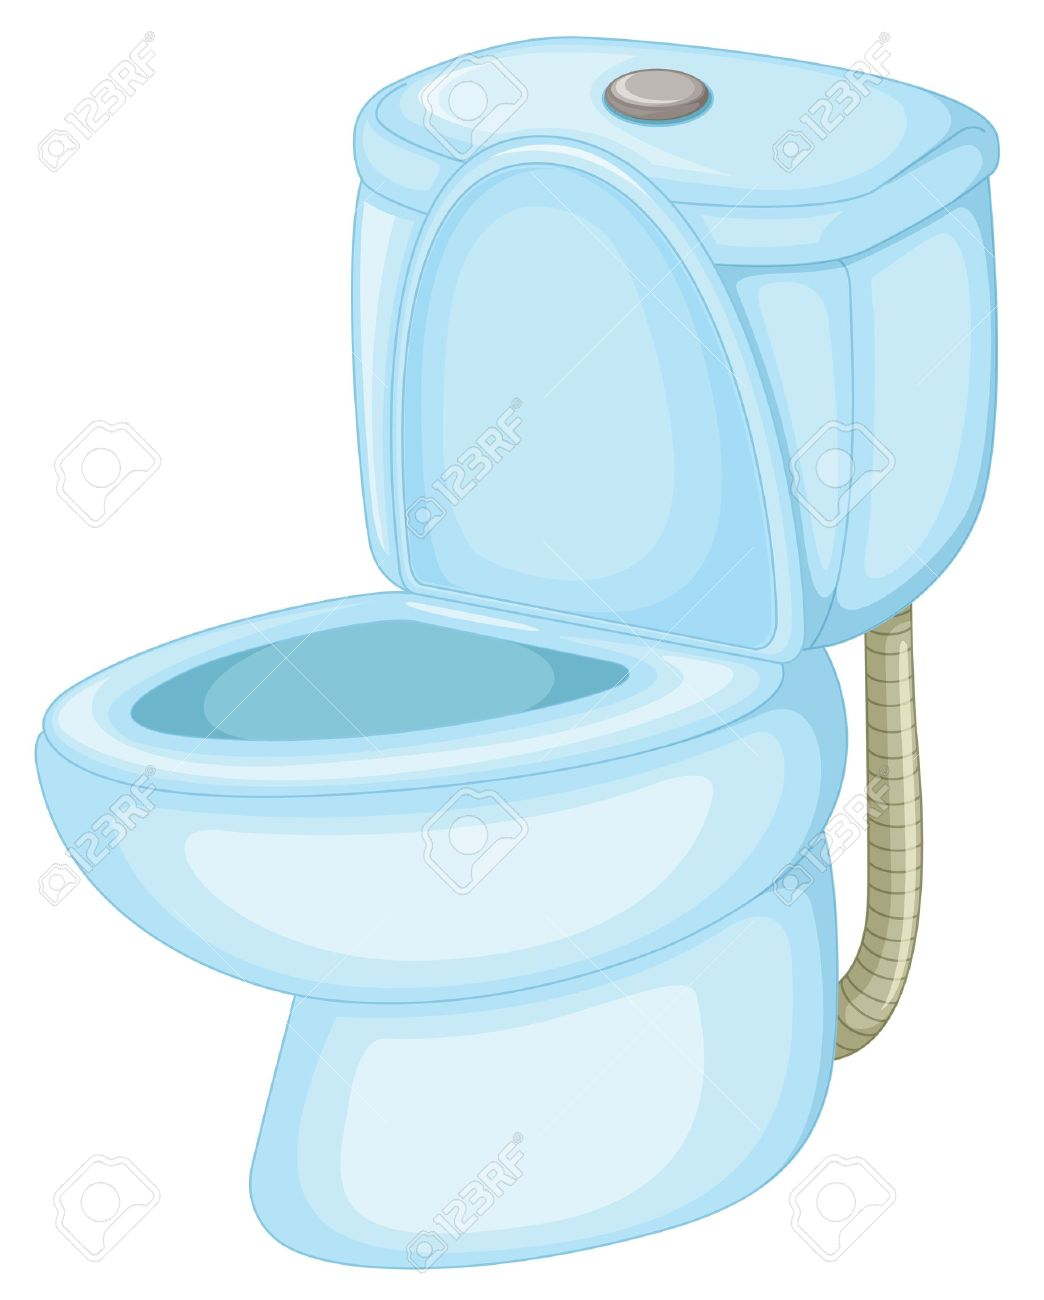 Illustration Of An Isolated Toilet Stock Vector